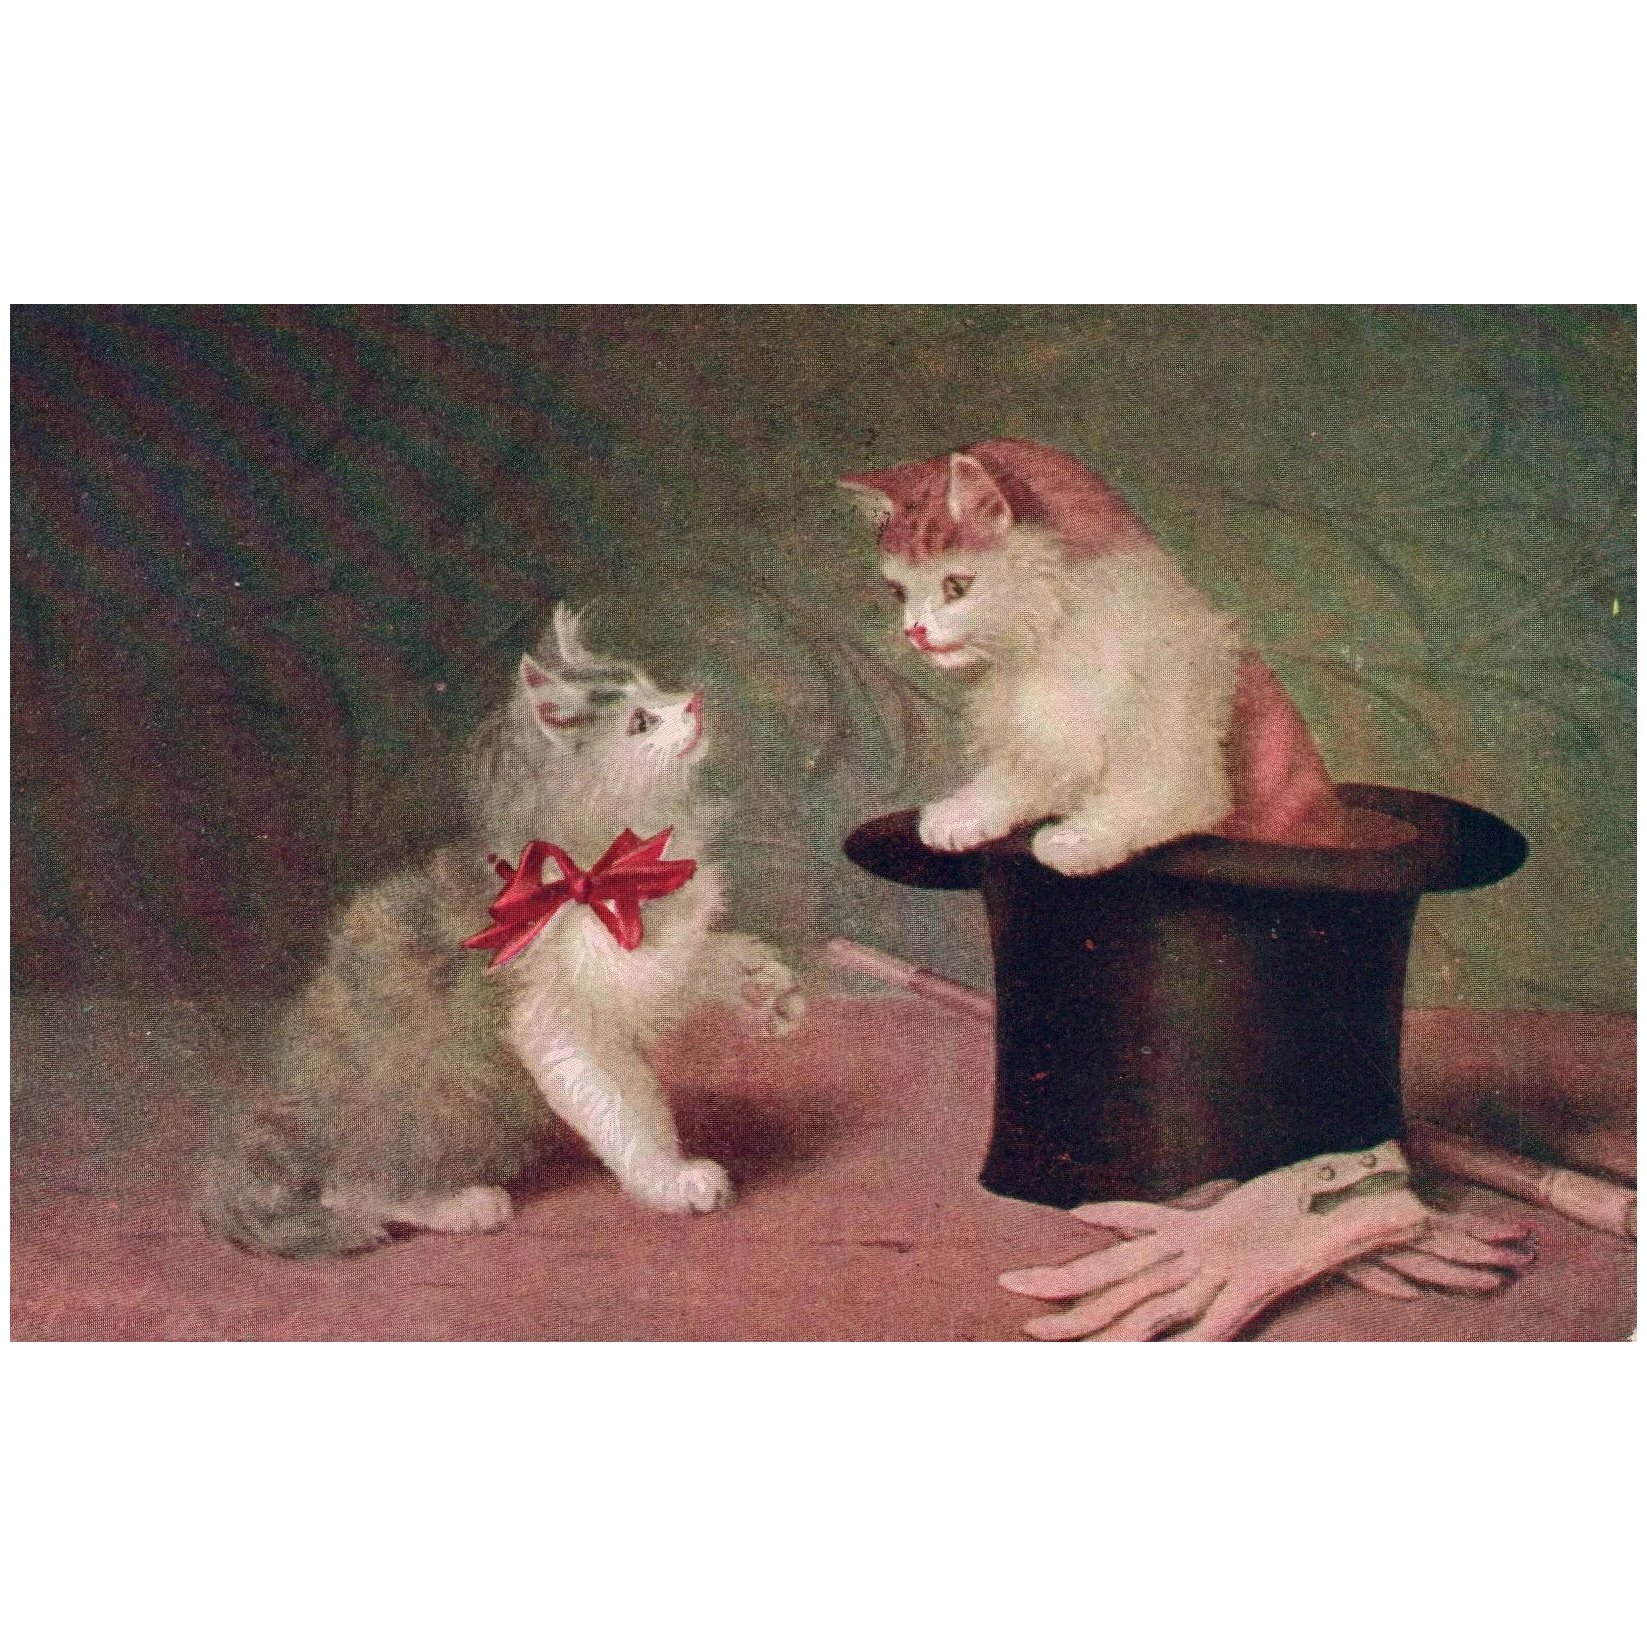 Artist Kitten Cats In Top Hat Magic Trick Vintage Postcard North Star Antiques Ruby Lane